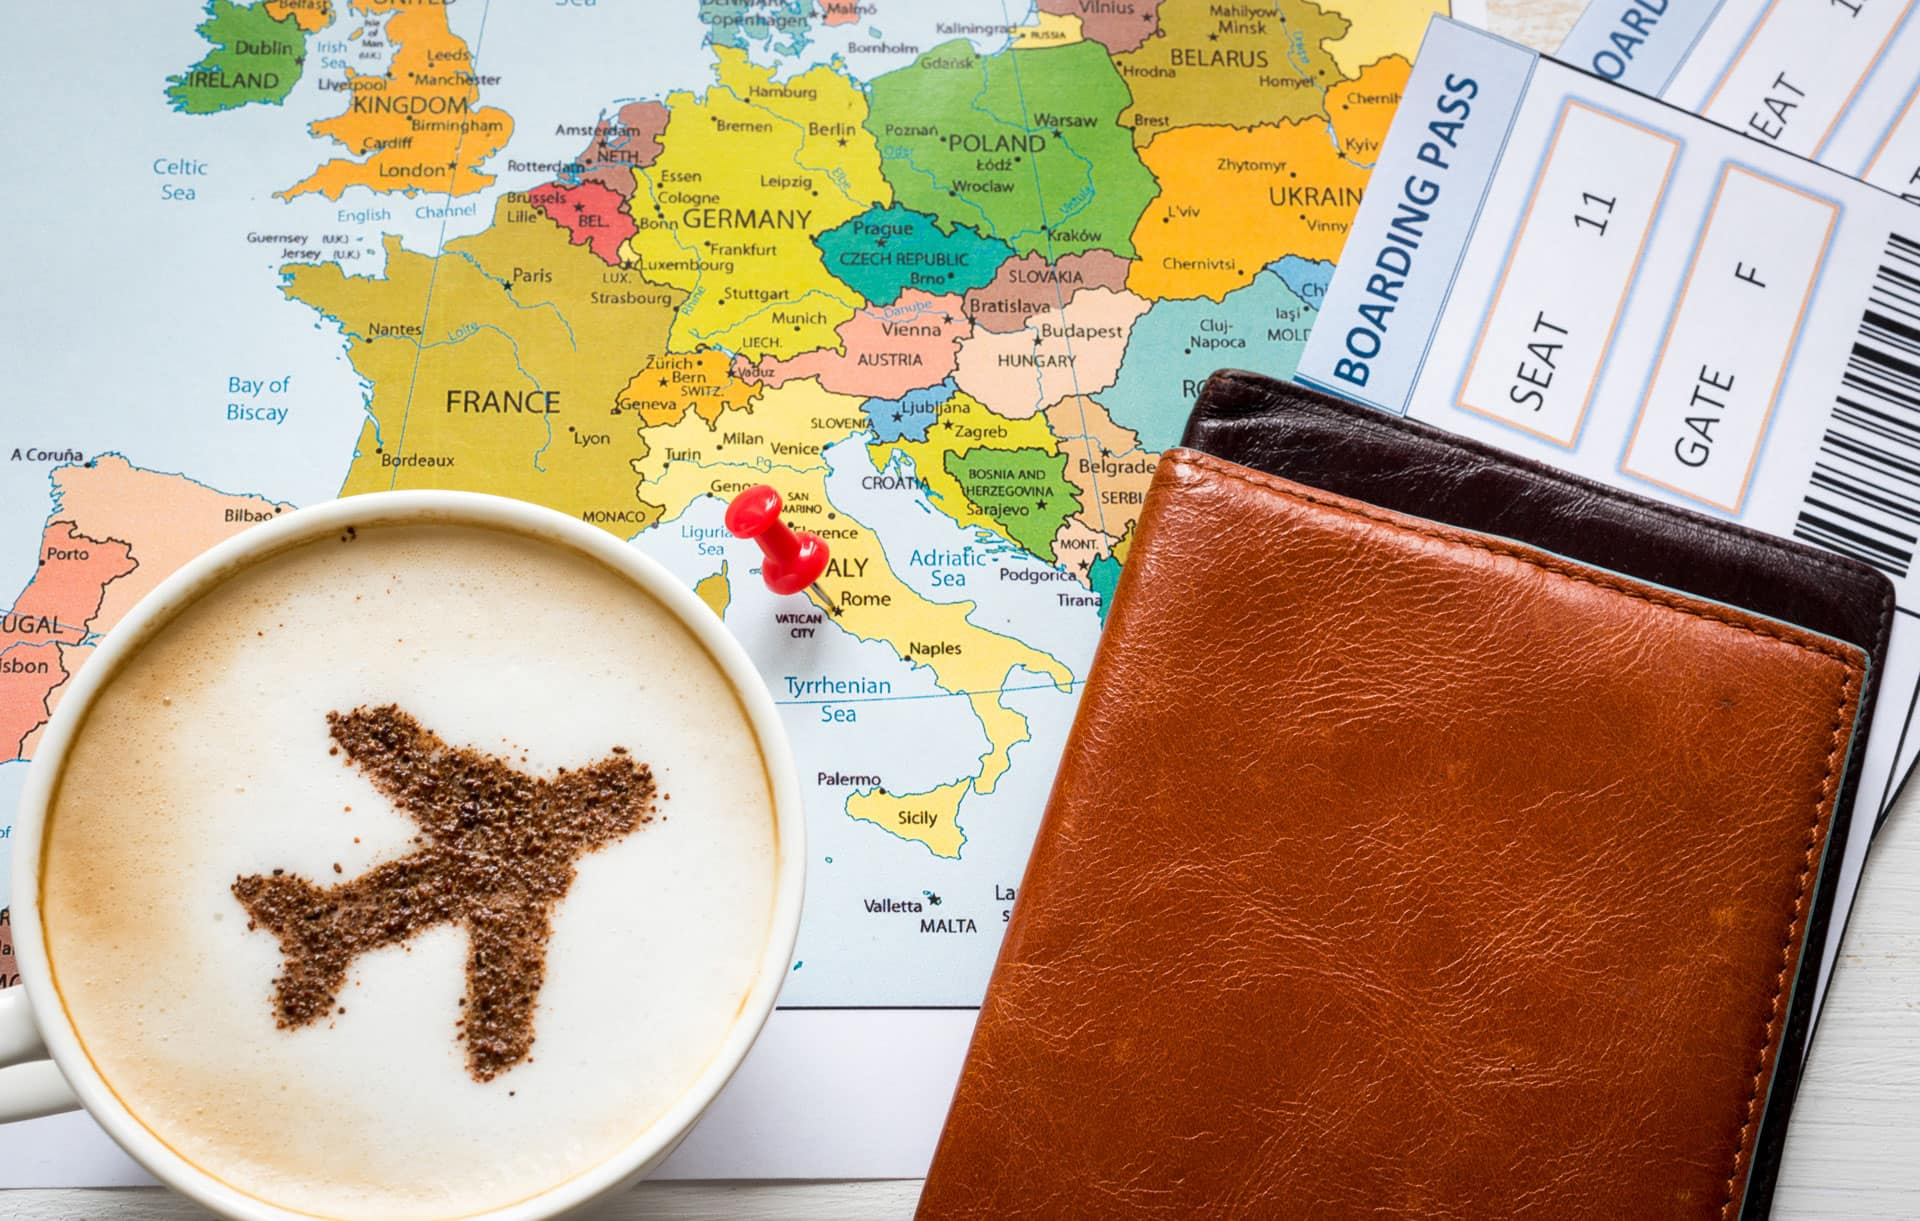 Staying safe while travelling abroad